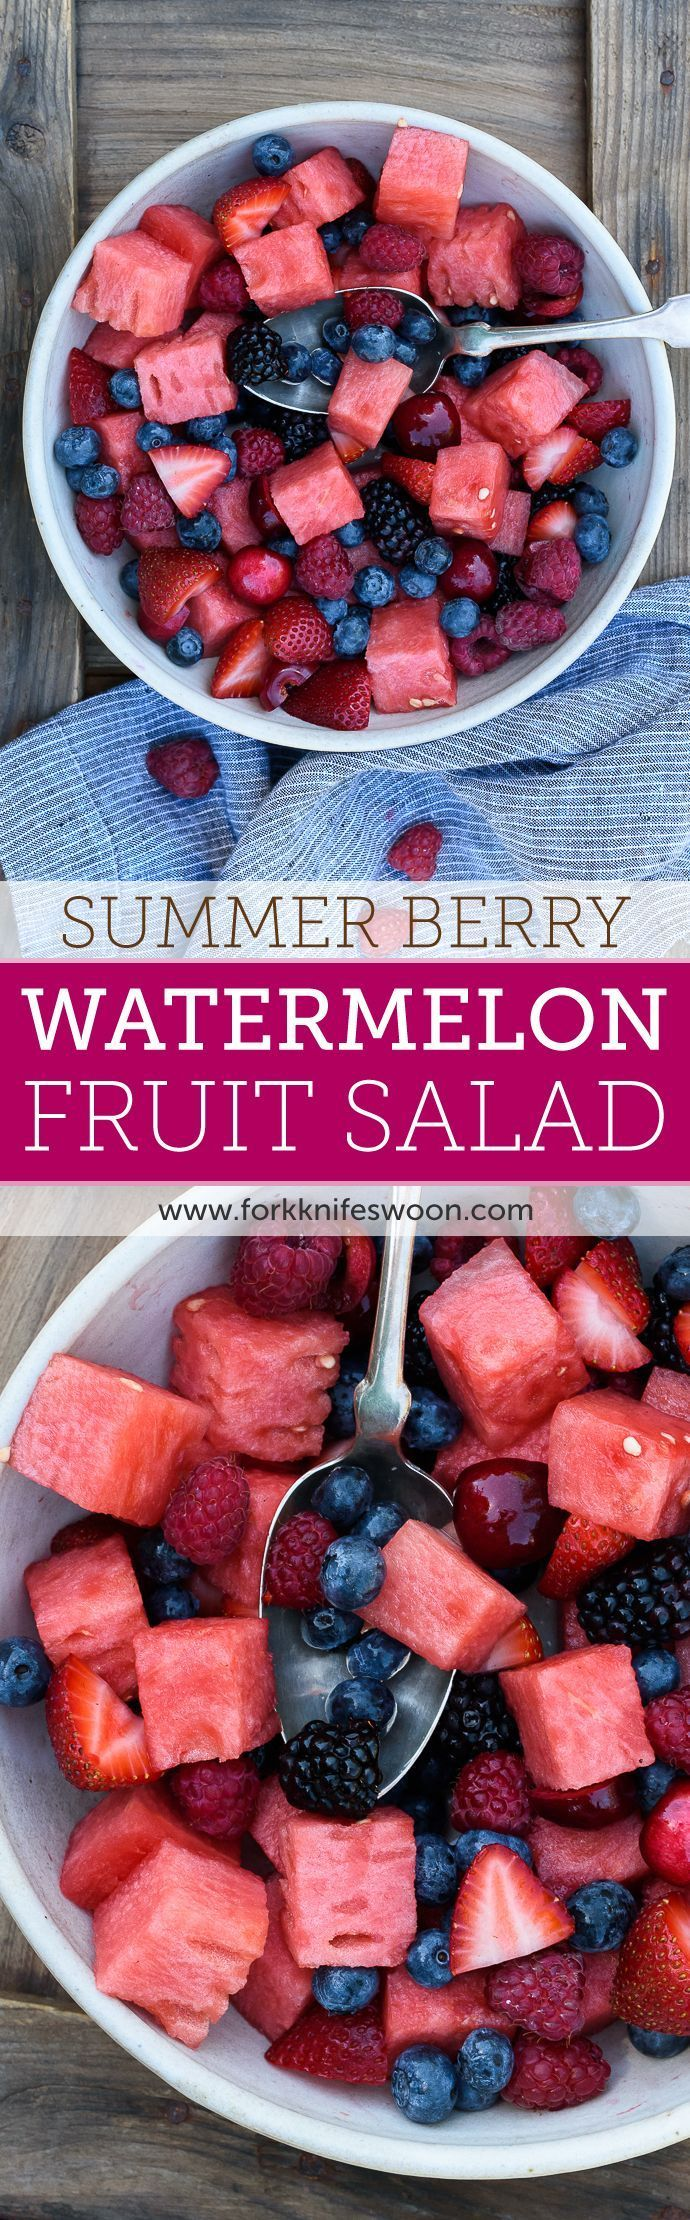 Berry Watermelon Fruit Salad & The End of Summer - Fork Knife Swoon #fruitsalad